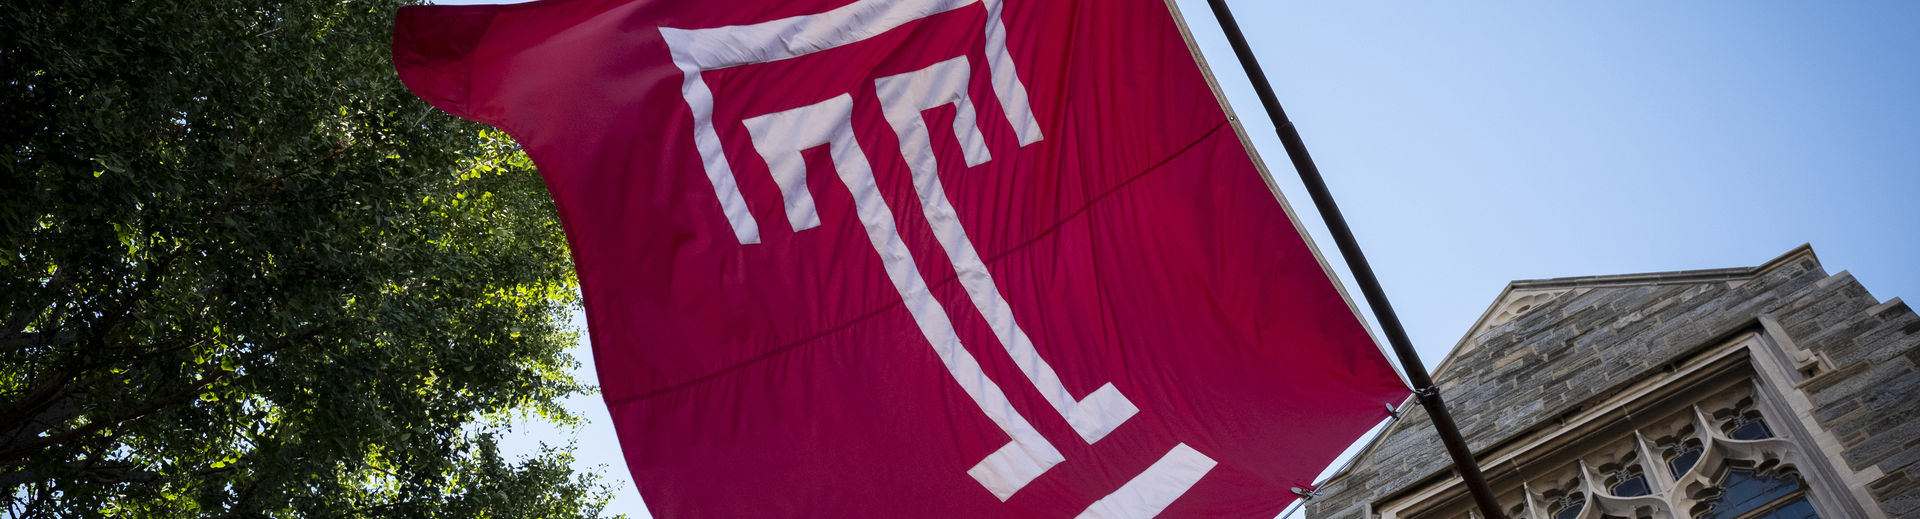 The Temple cherry T flag waves in front of a blue sky on a sunny day